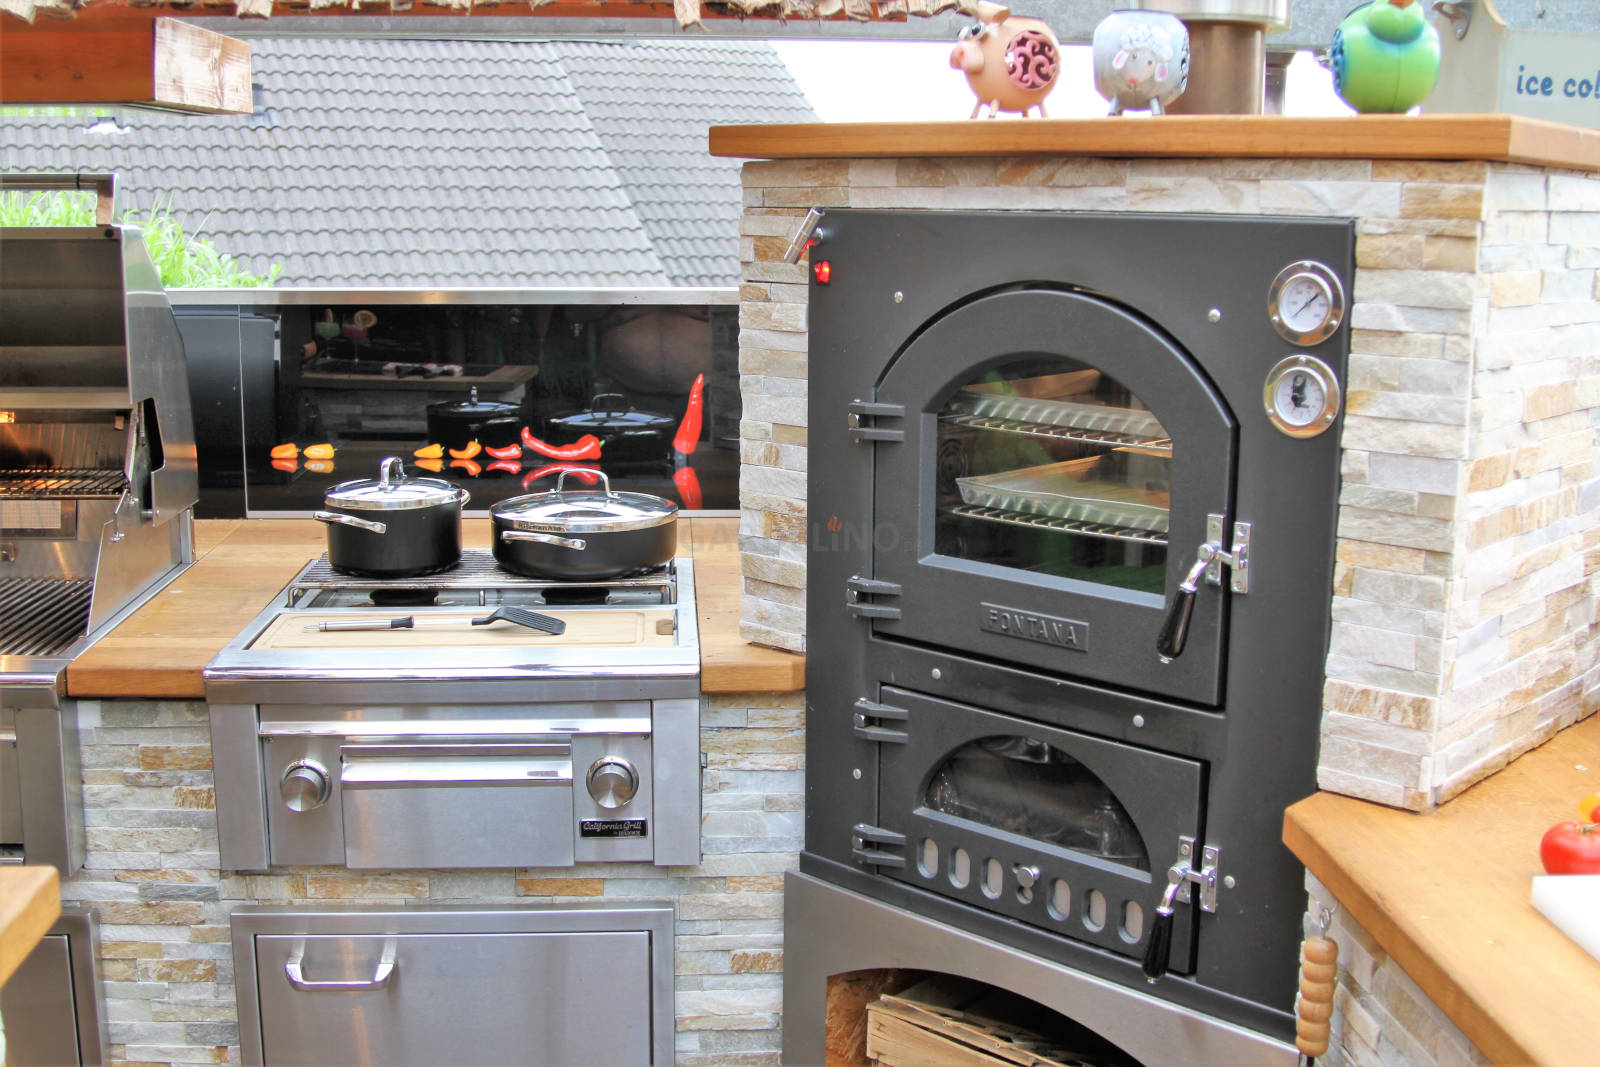 Steingrill Outdoor Küche : Outdoor grill selber bauen grill marken perfect marke bar and